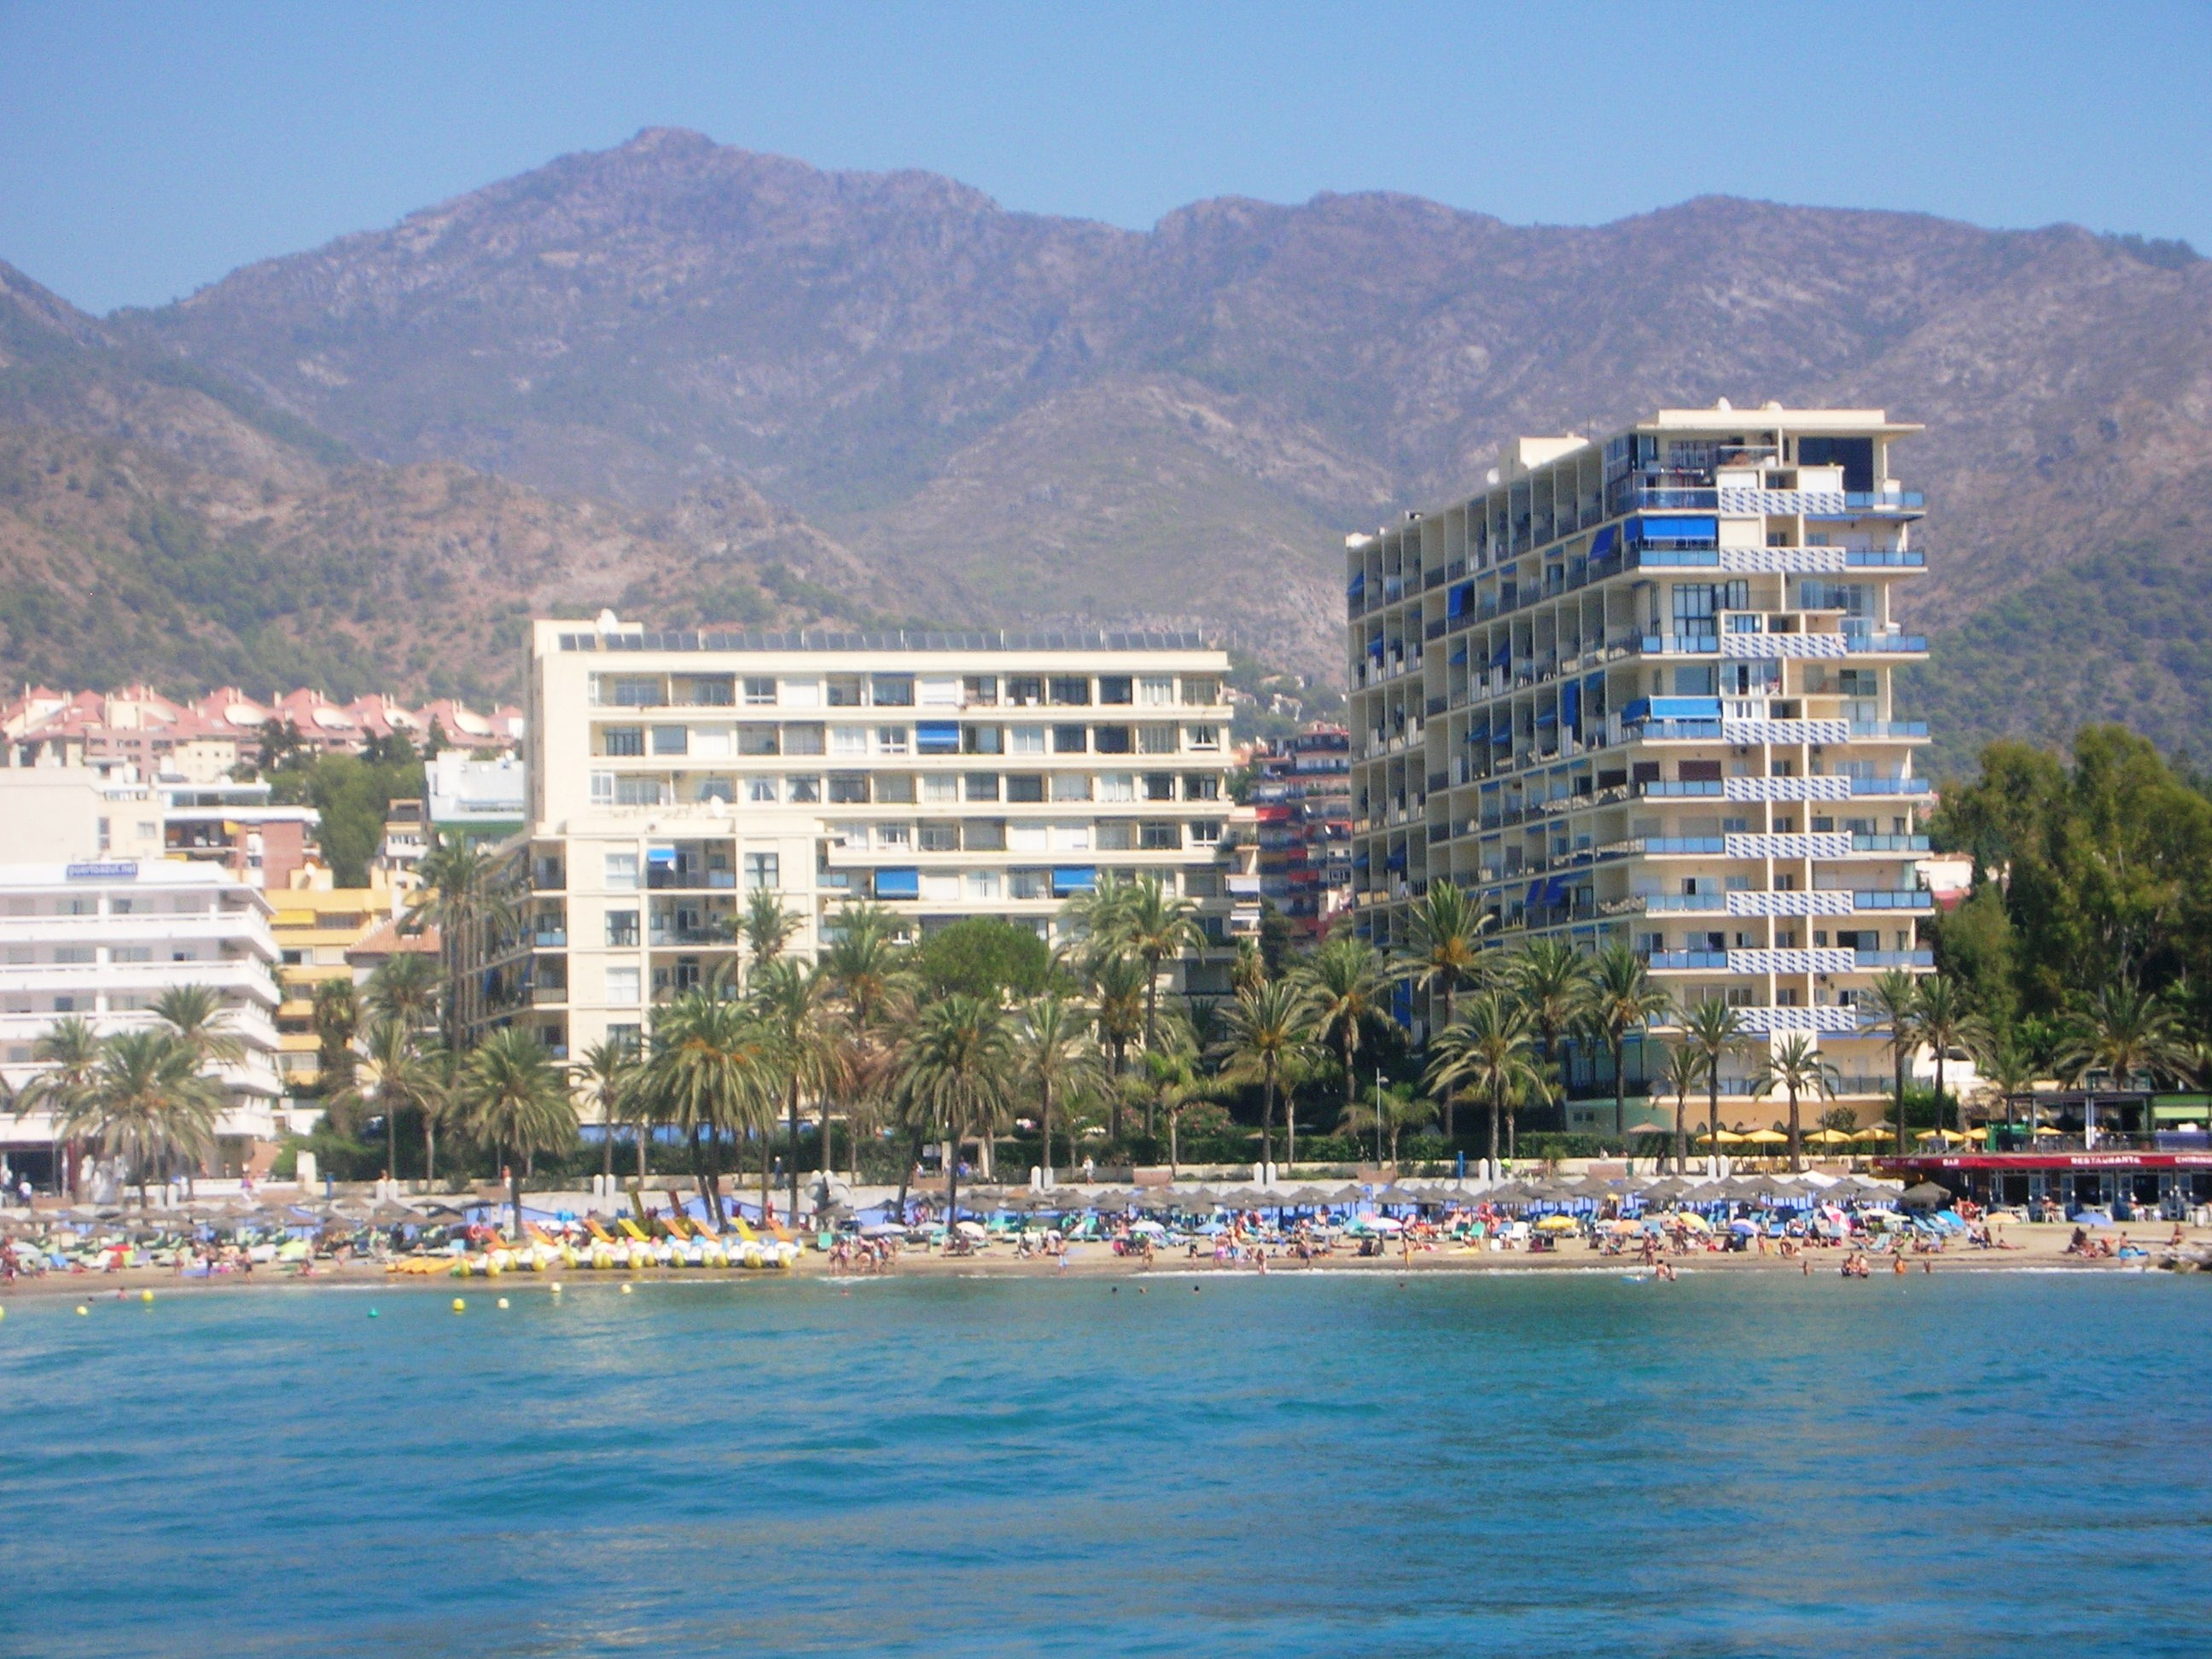 The enviable beachfront position of the Skol apartments, Marbella